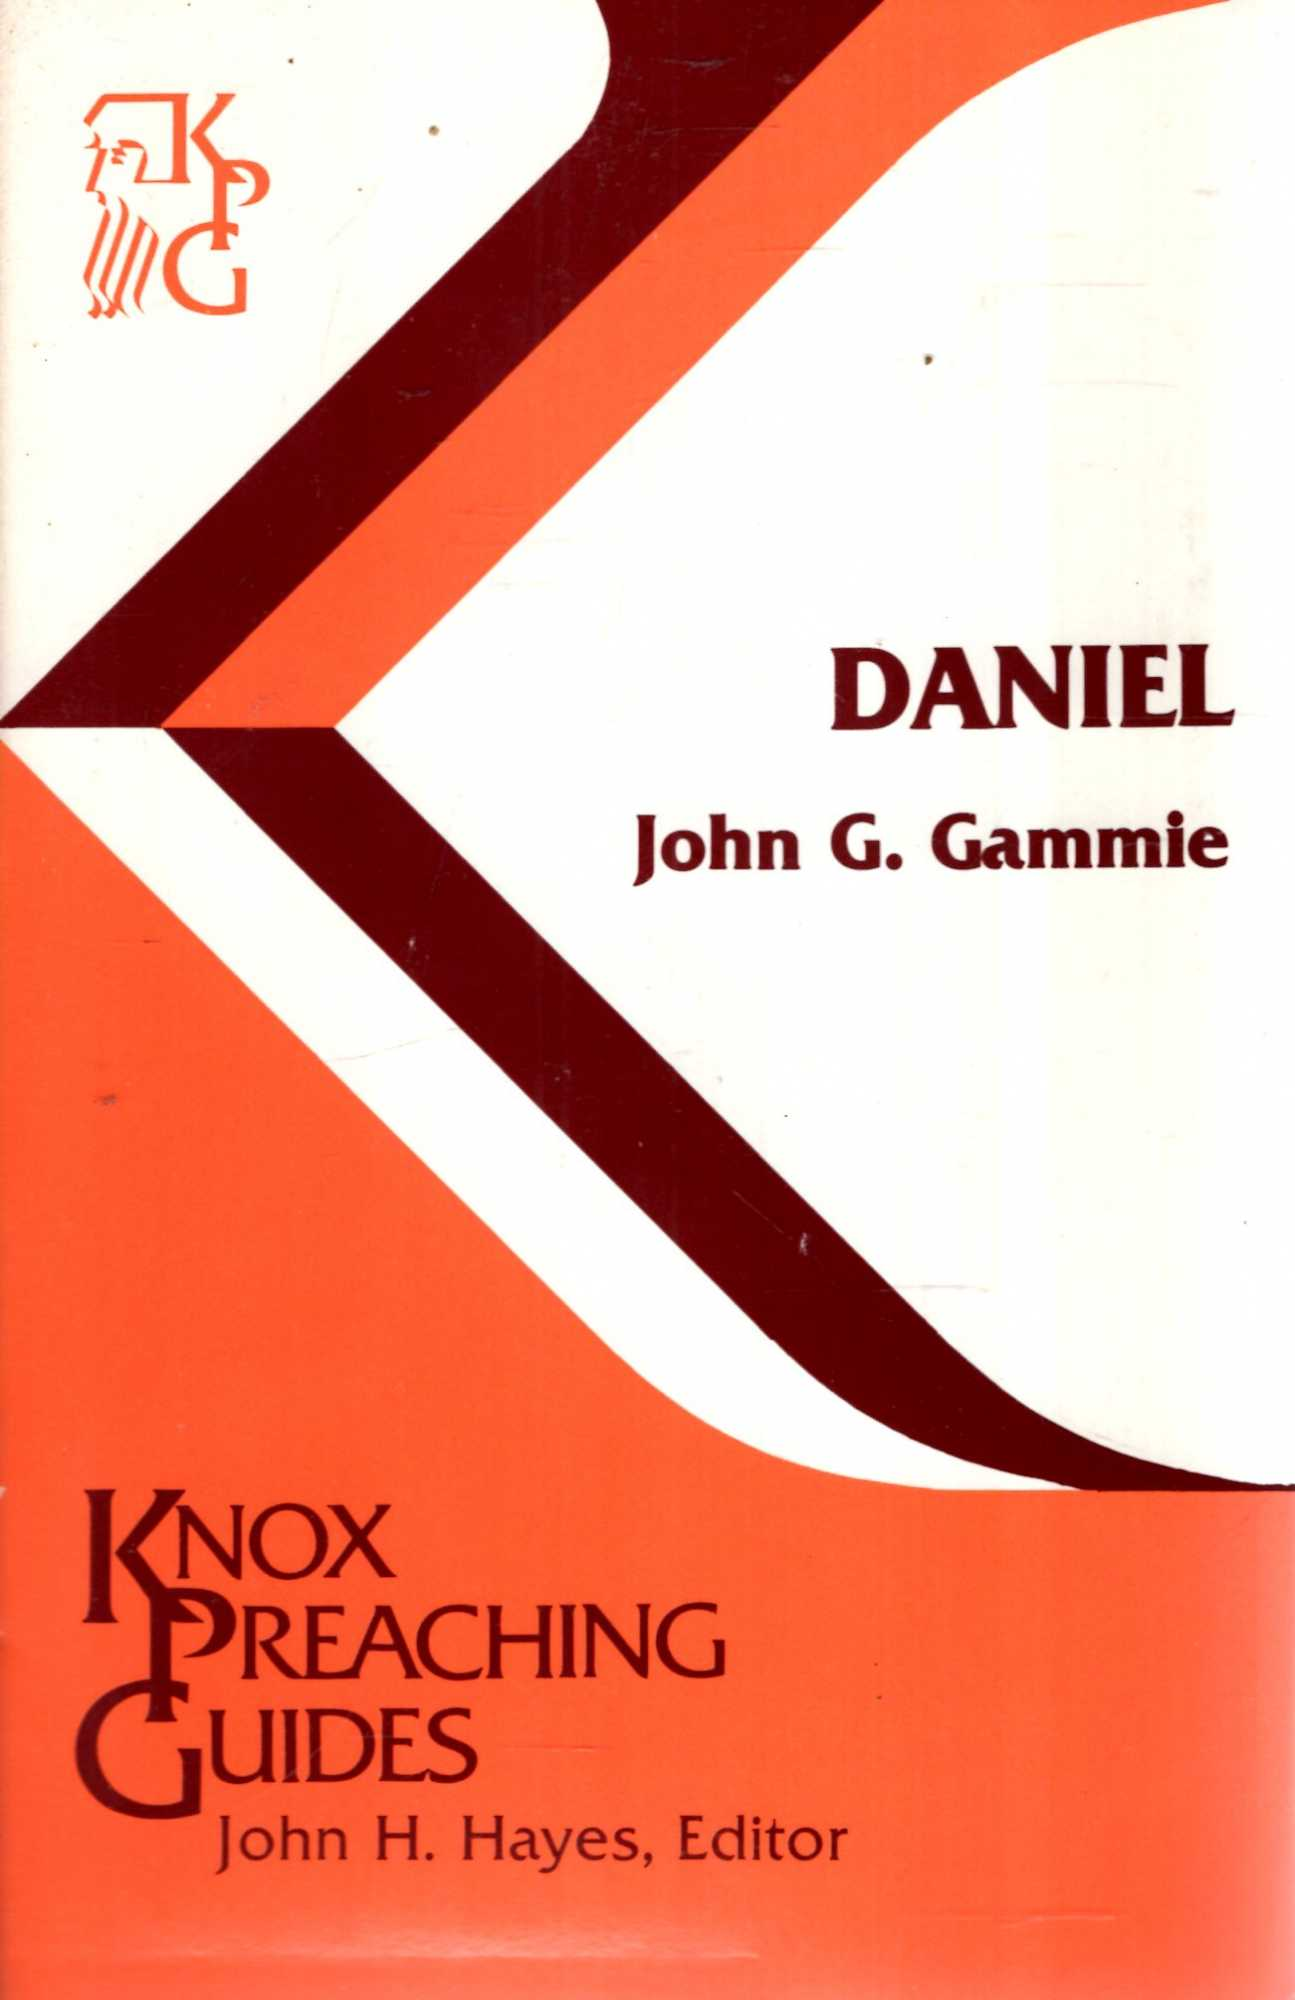 Image for Daniel (Knox Preaching Guides)